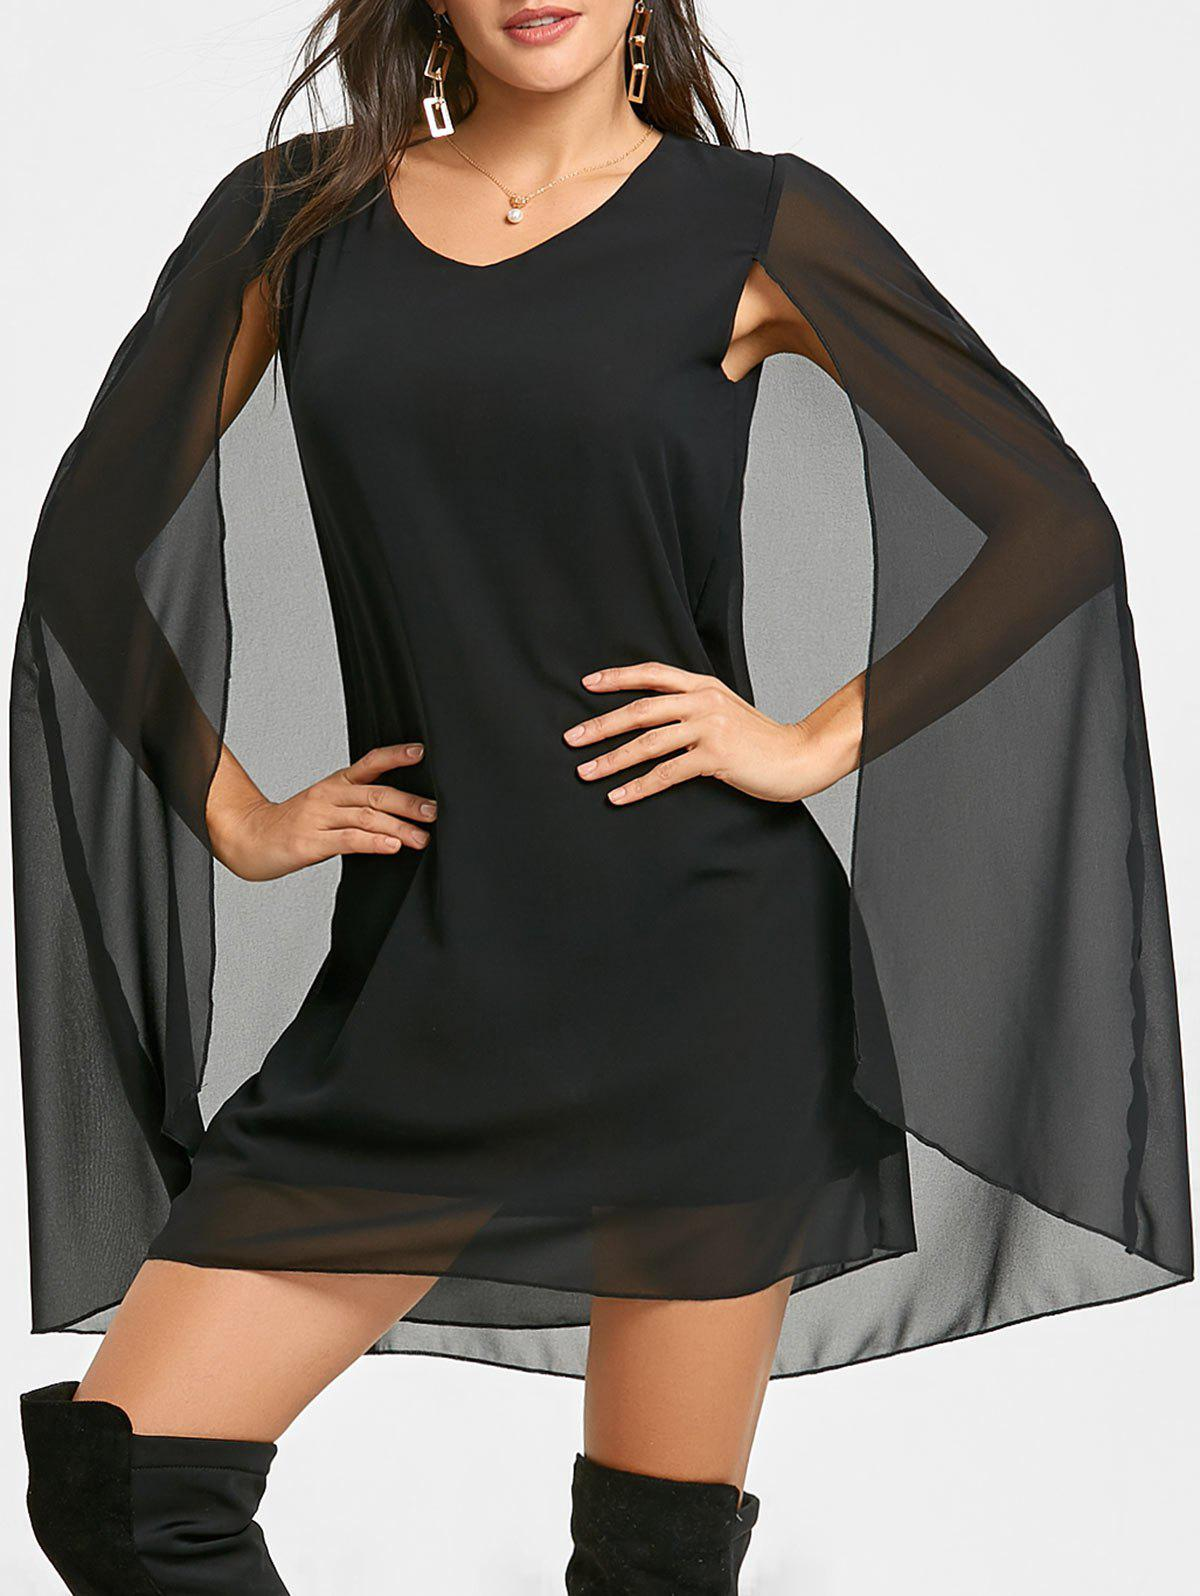 Chiffon V Neck Cape Dress - BLACK L